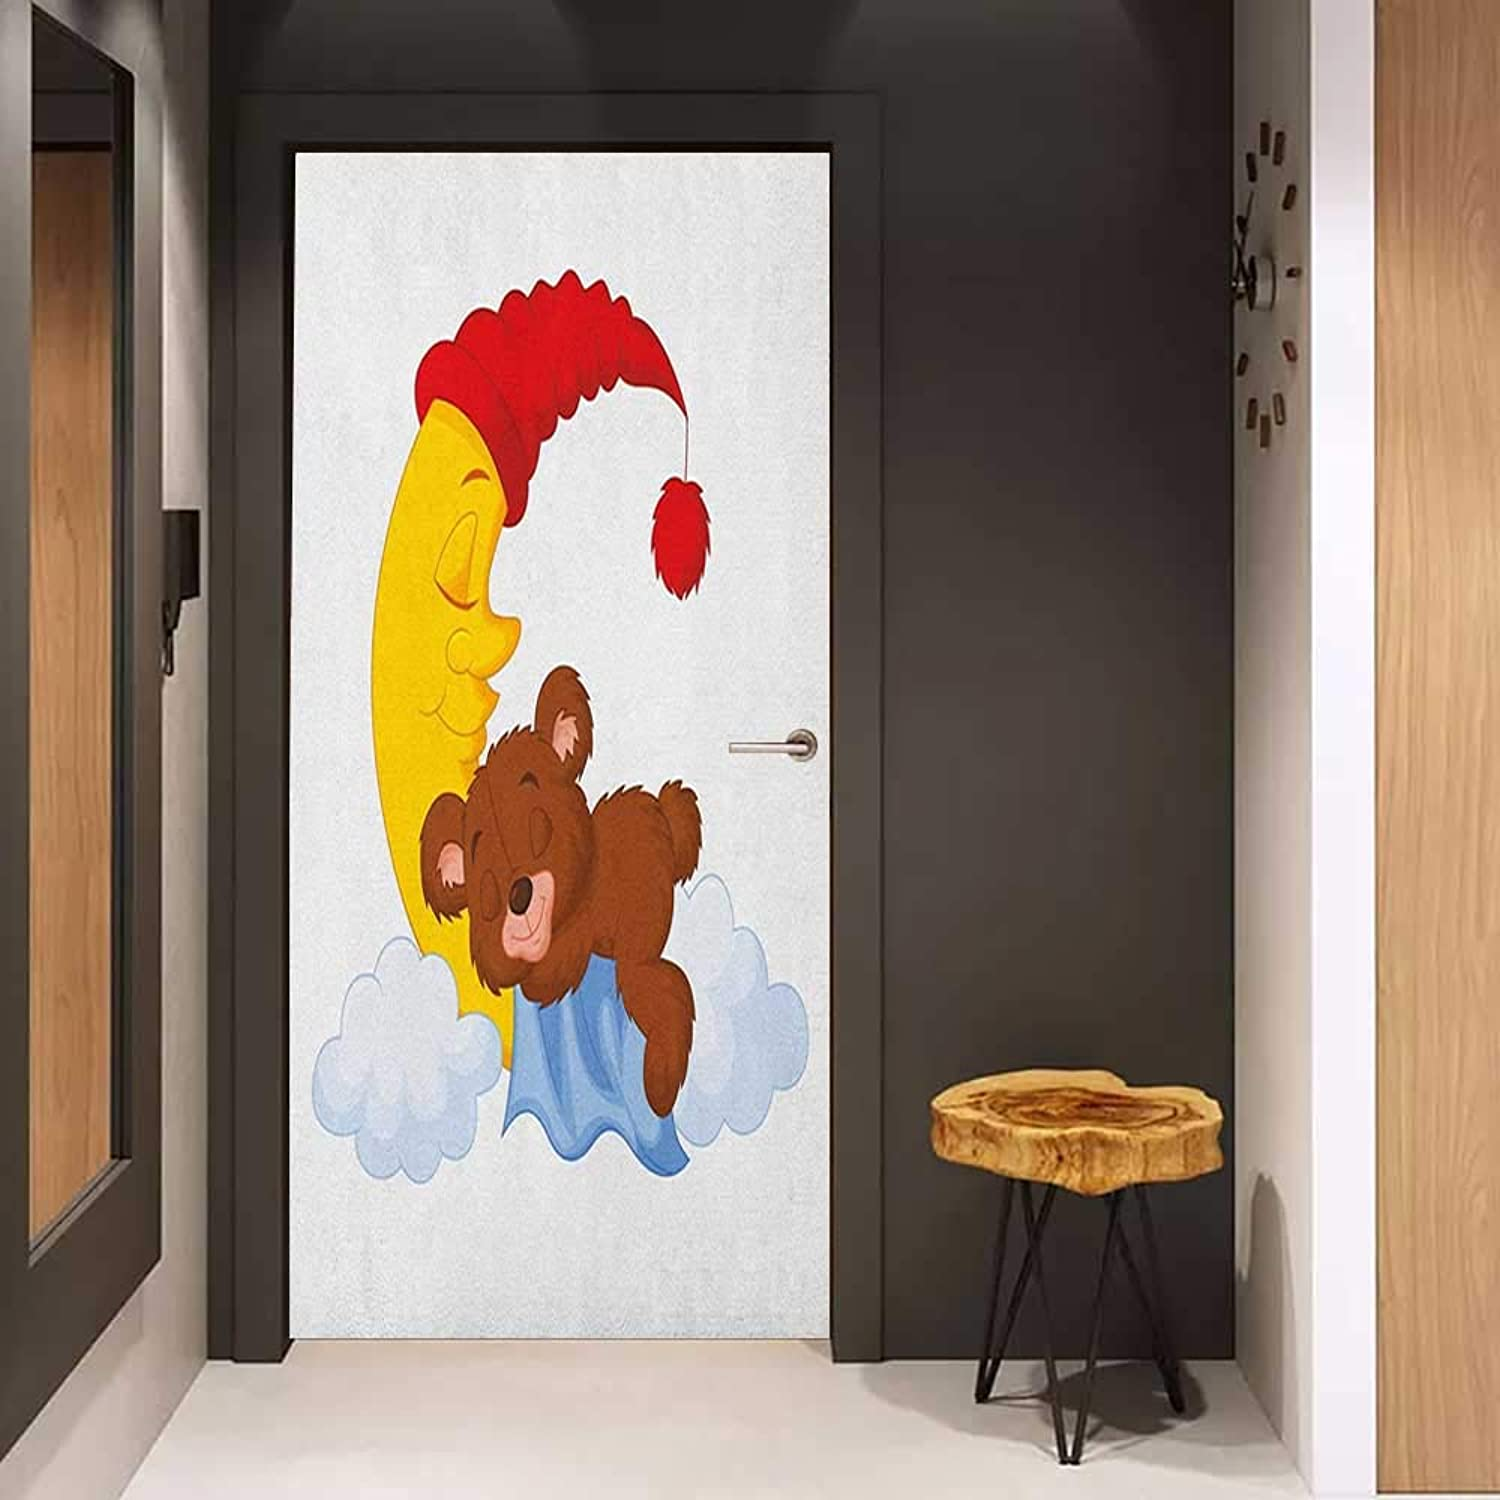 Onefzc Wood Door Sticker Bear Adorable Cartoon for Kids Cute Baby Character Falls Asleep on Moon with Hat and Clouds EasytoClean, Durable W23 x H70 Multicolor